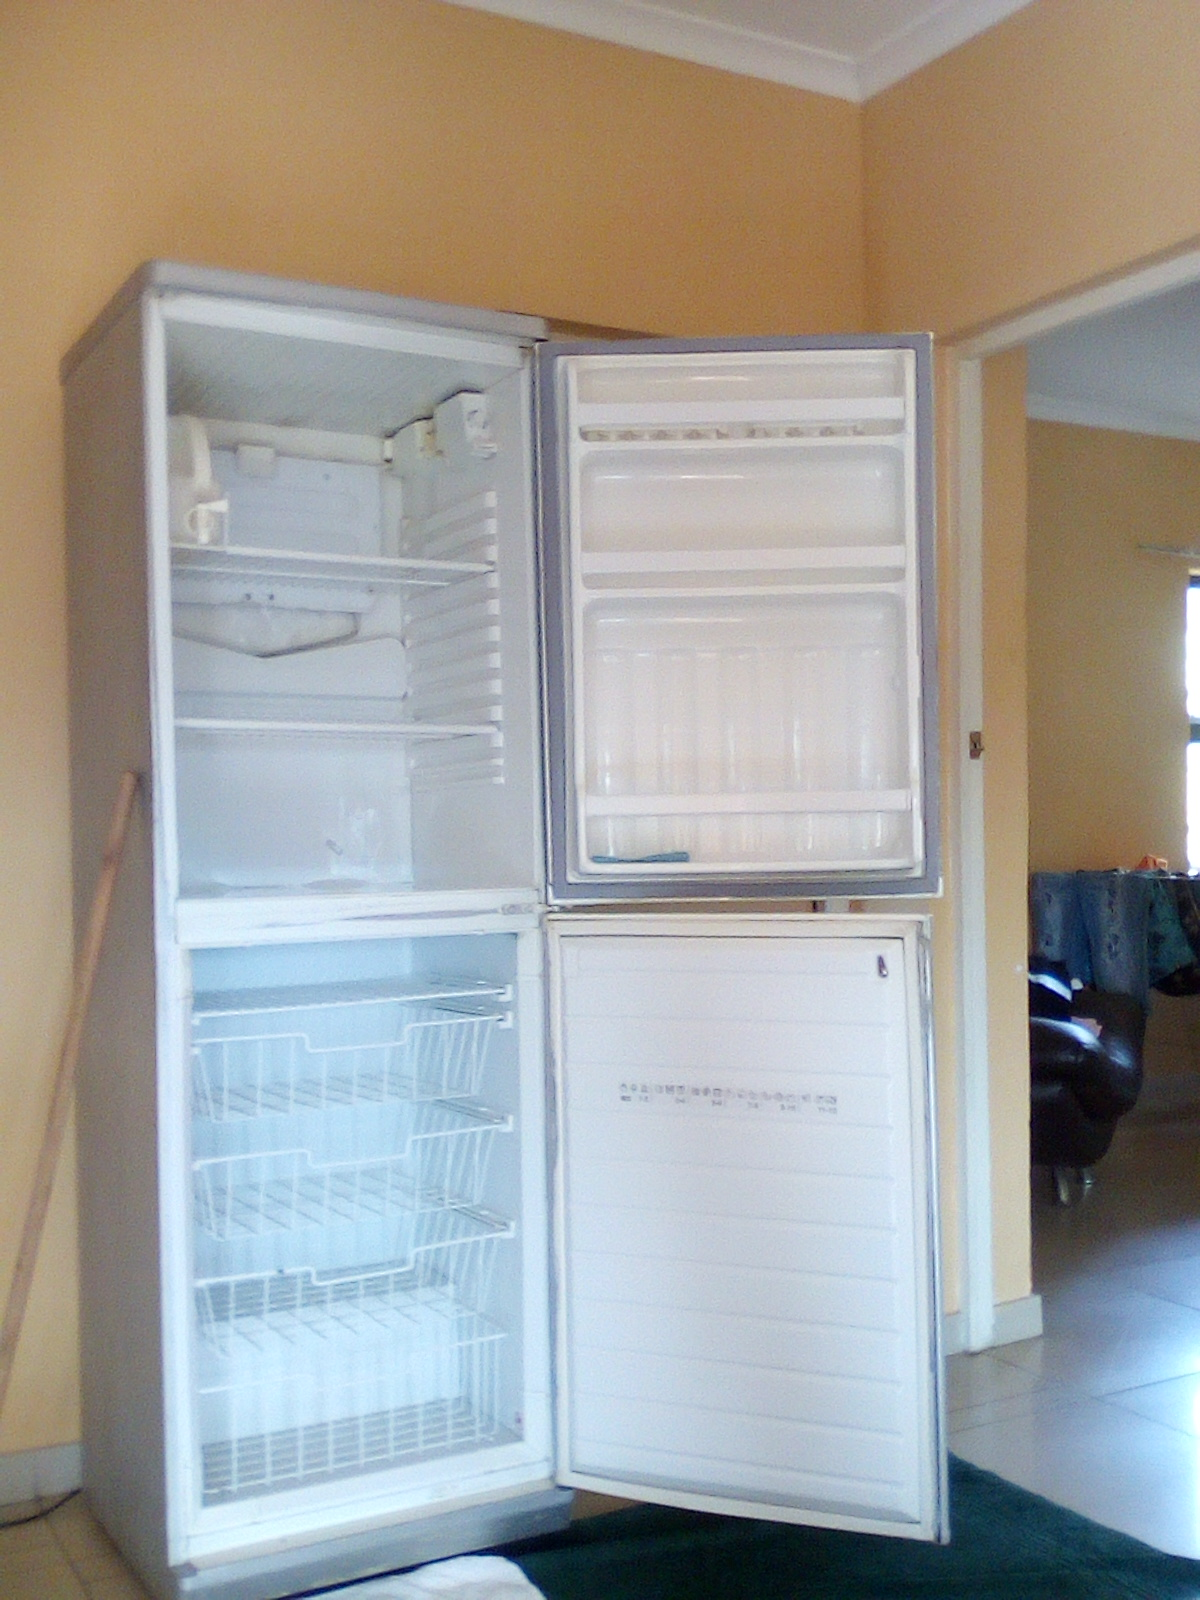 Defy 2 door fridge